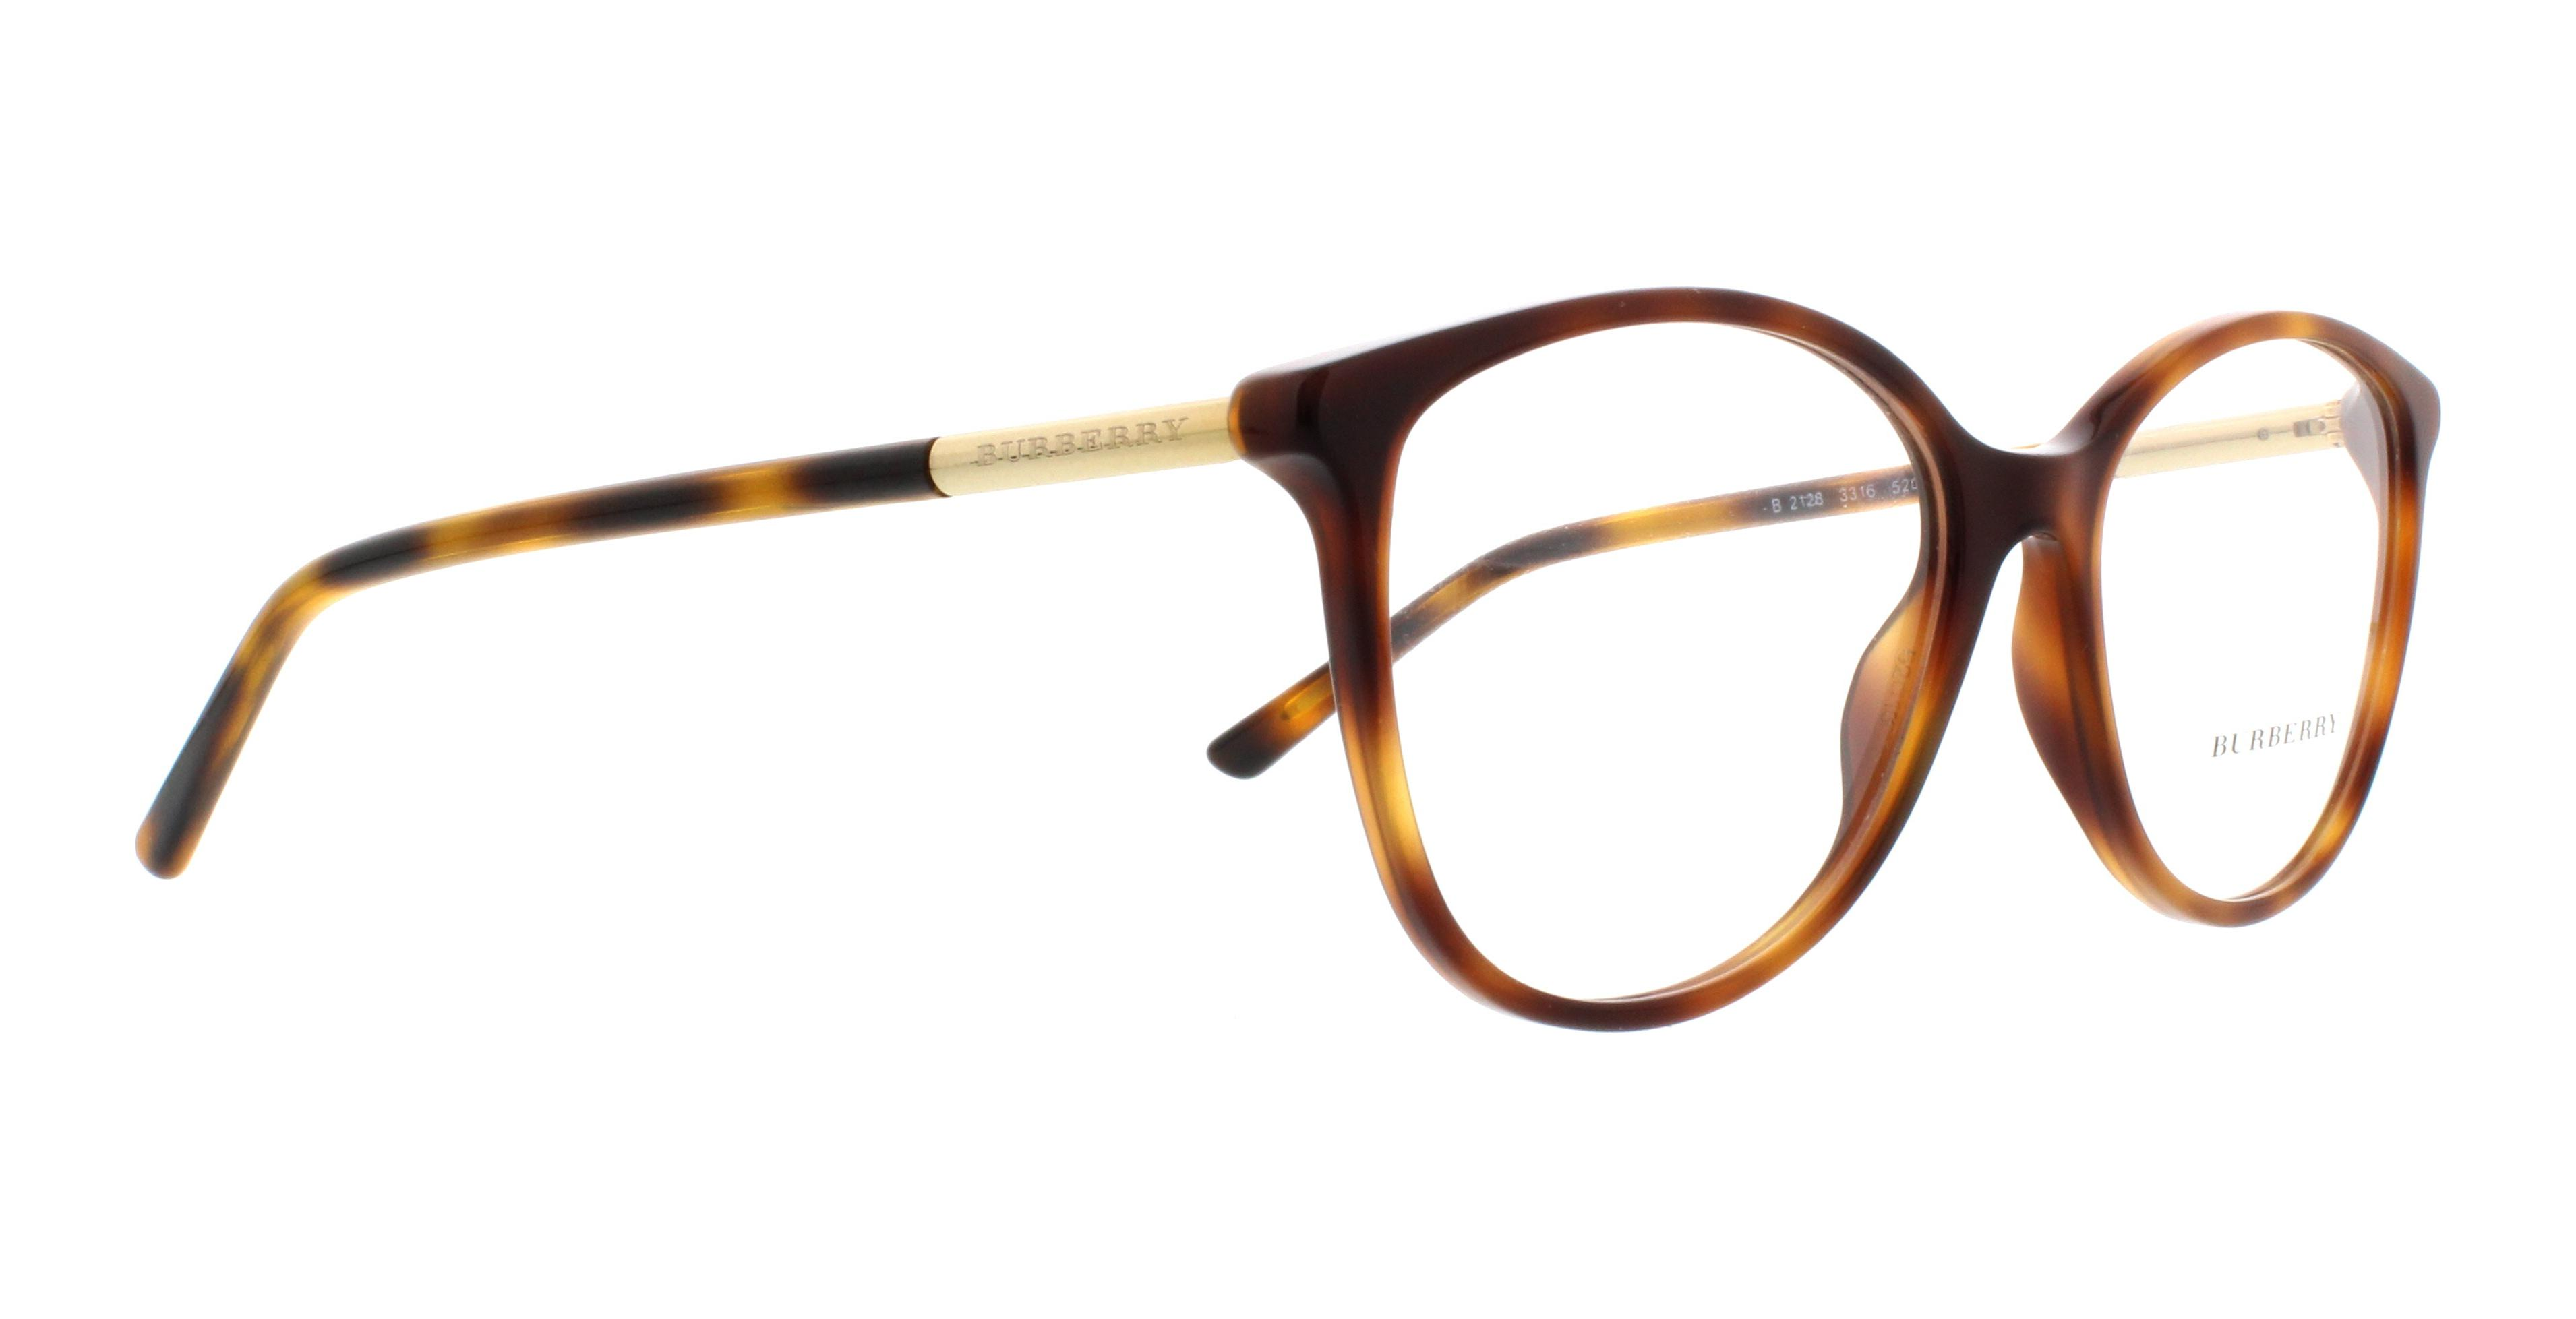 540e3f54b3d Designer Frames Outlet. Burberry BE2128